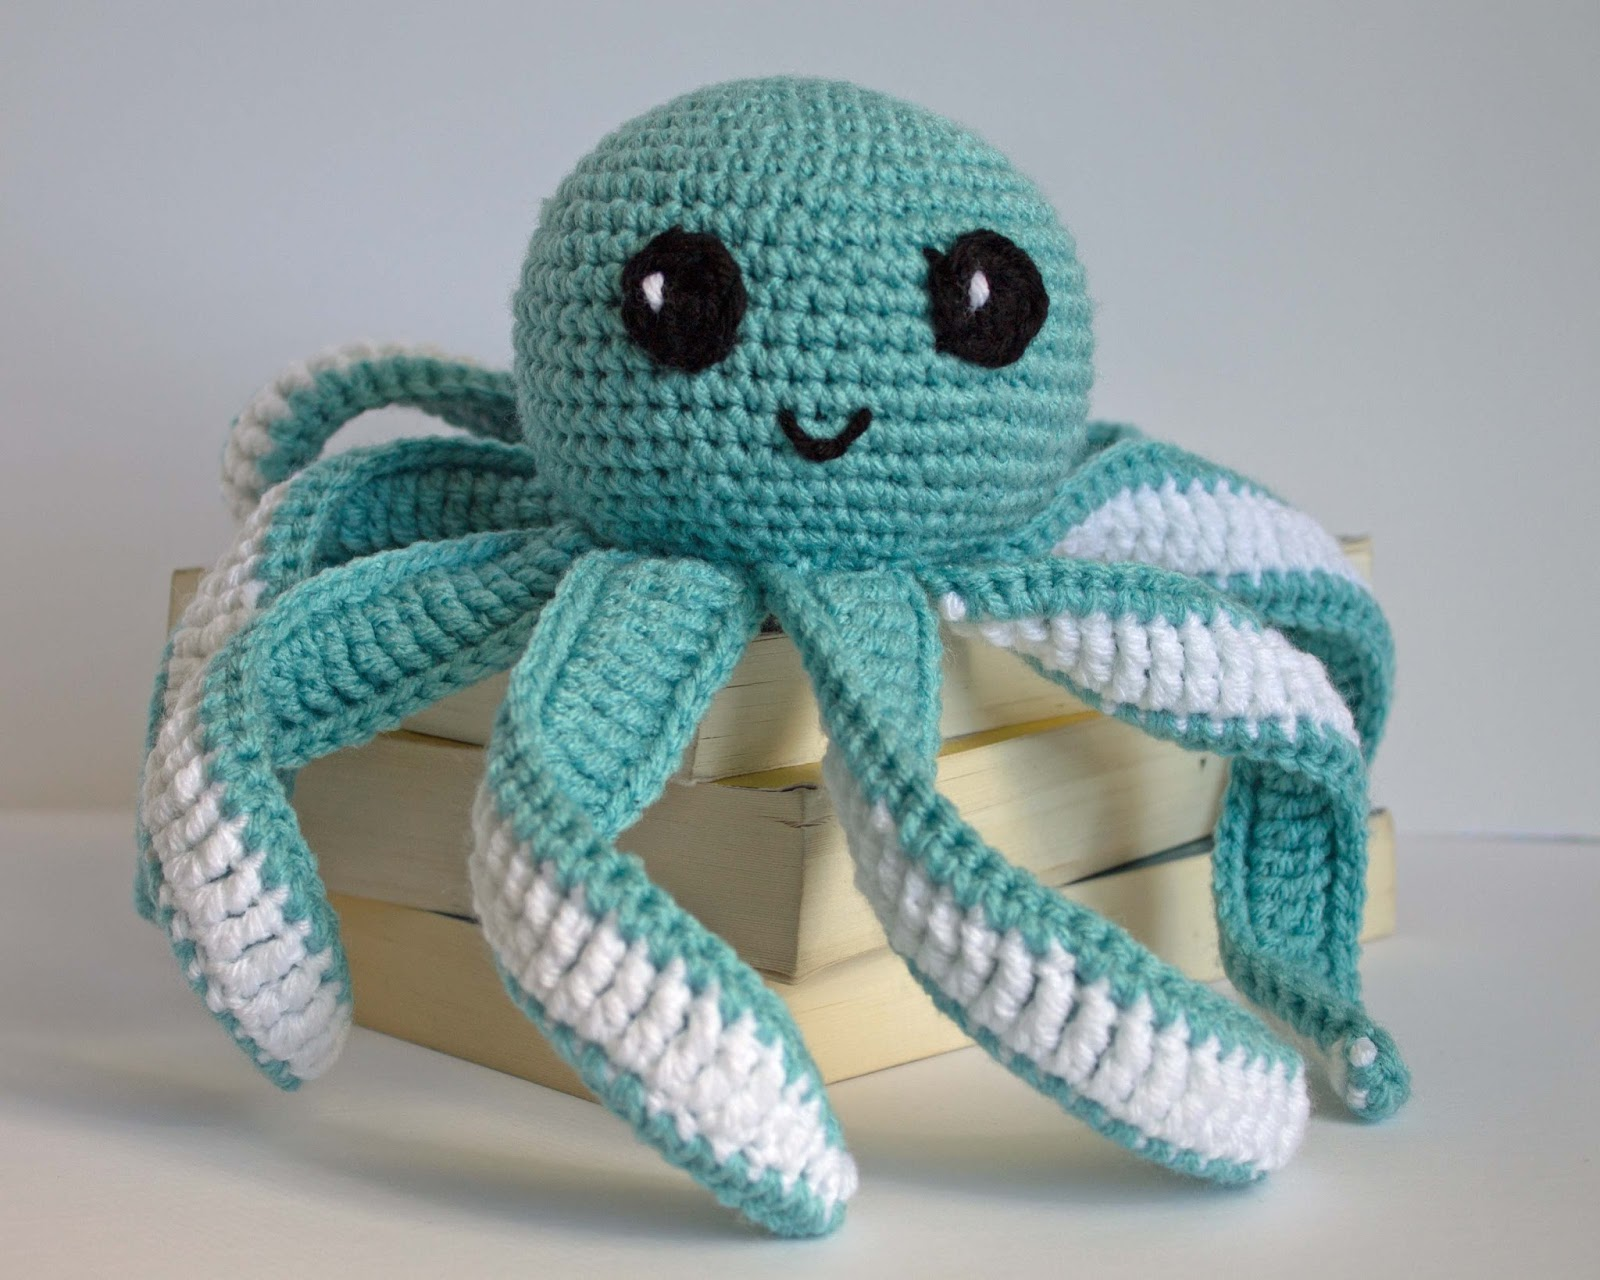 Crochet Patterns Octopus : this post contains affiliate links. this means that any purchase you ...